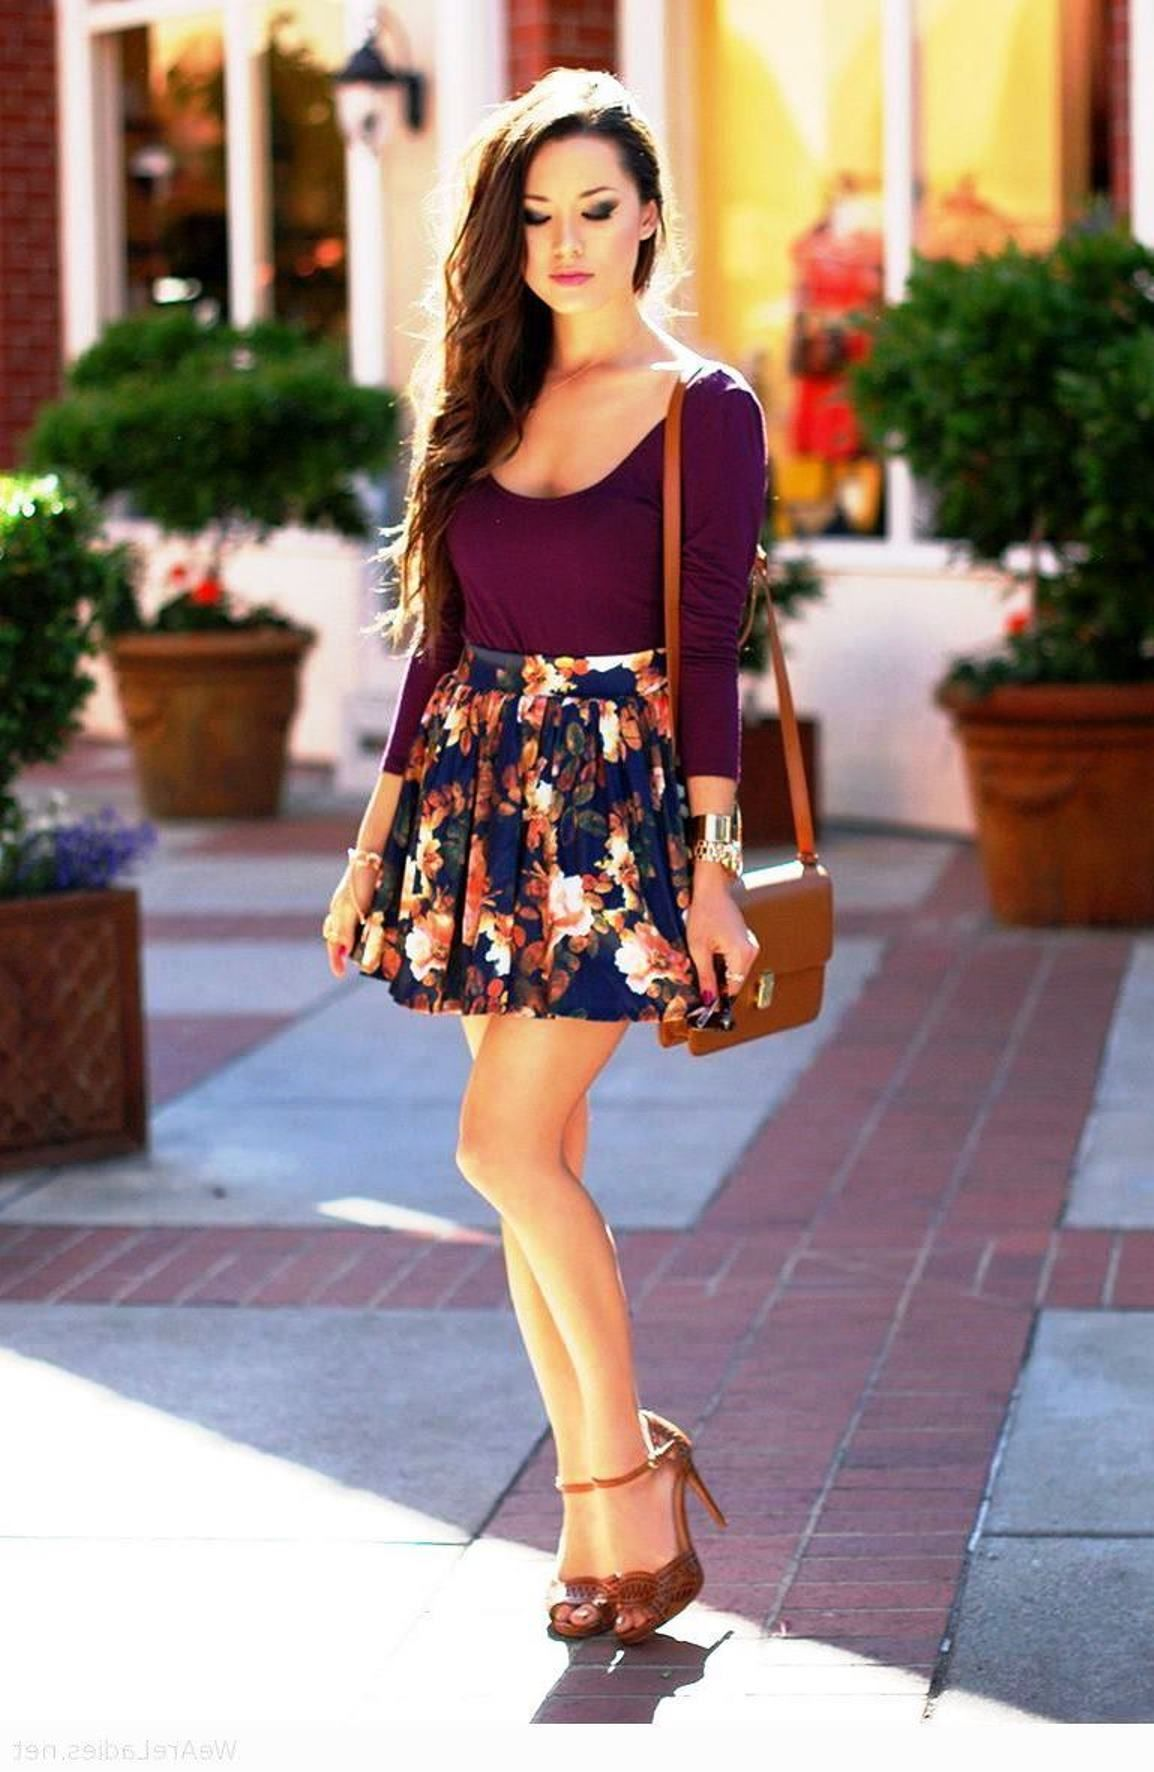 Tumblr Fashion Outfits Spring Images